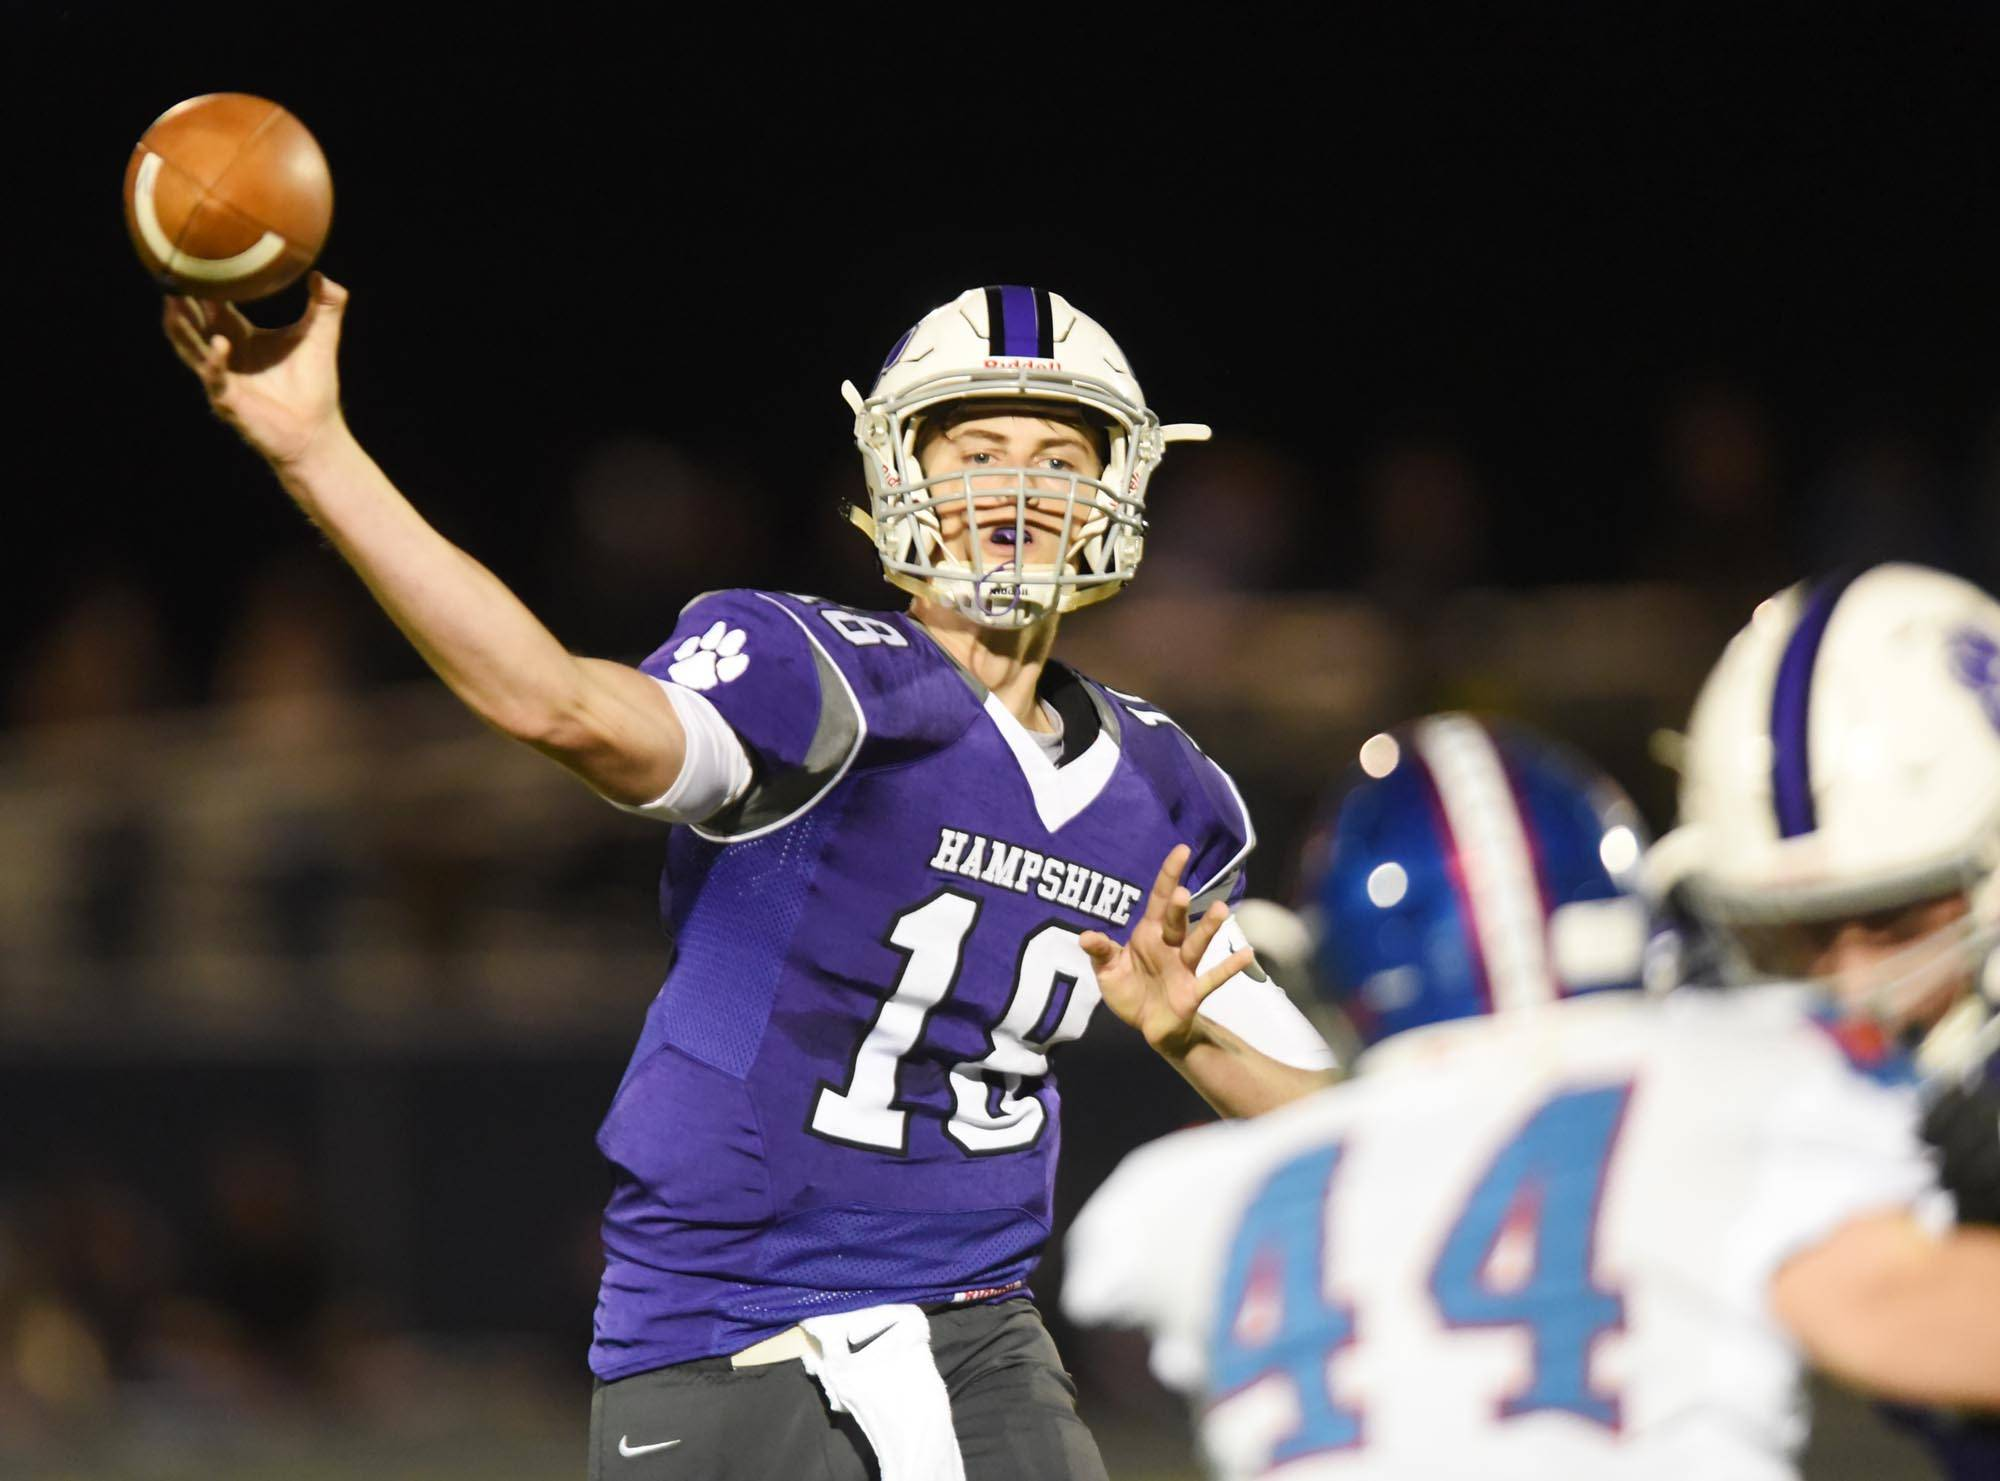 Hampshire's Drew Dalby throws a pass against Dundee-Crown Friday at Hampshire High School.